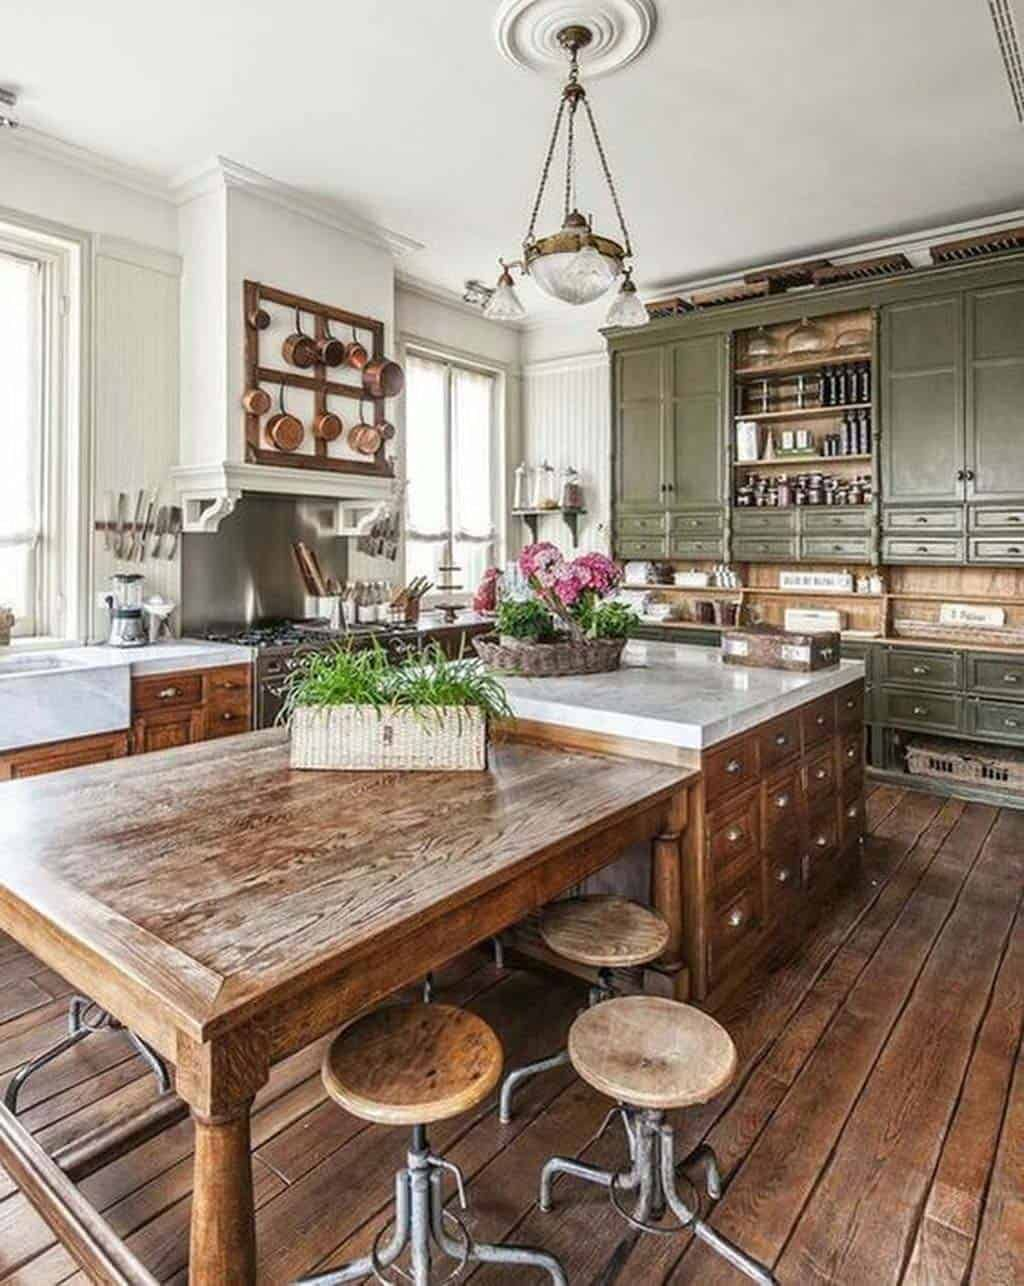 40 Unbelievable Rustic Kitchen Design Ideas To Steal Rustic Country Kitchens Kitchen Design Kitchen Style